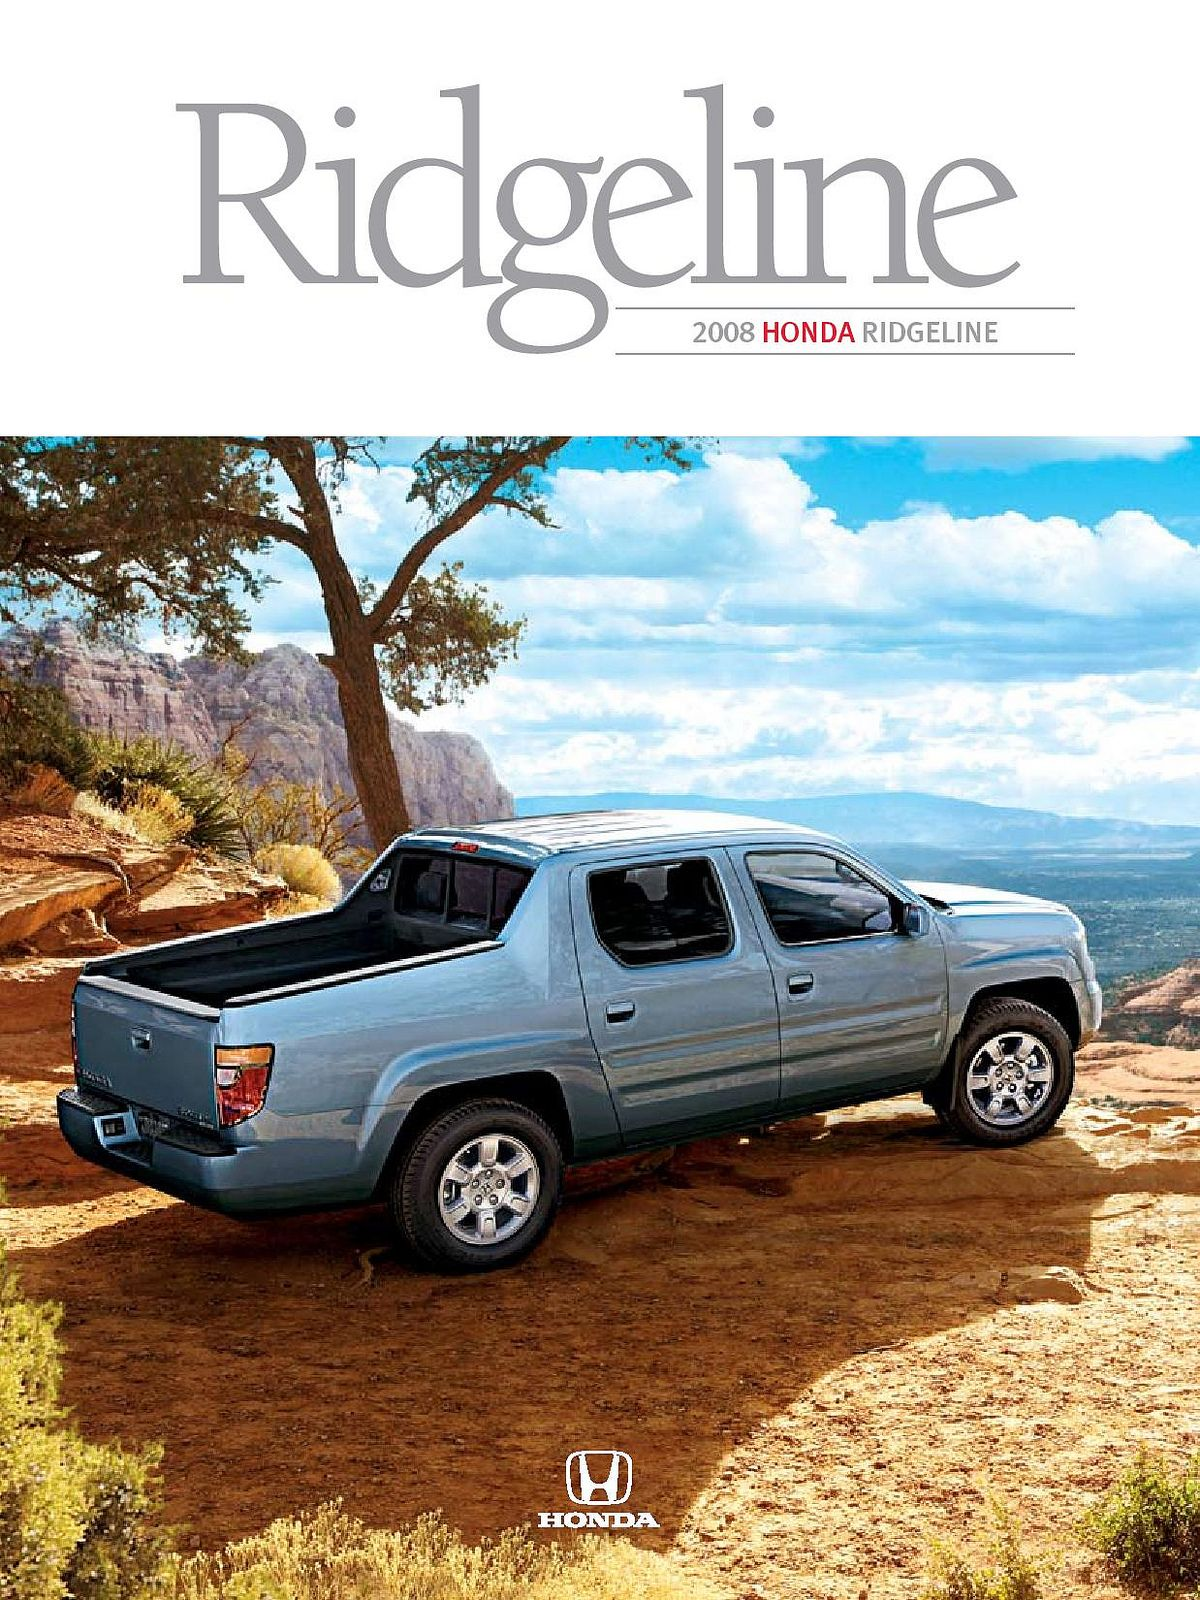 19bc01111046da1e77c8f78145063a25 Interesting Info About Honda Ridgeline 2008